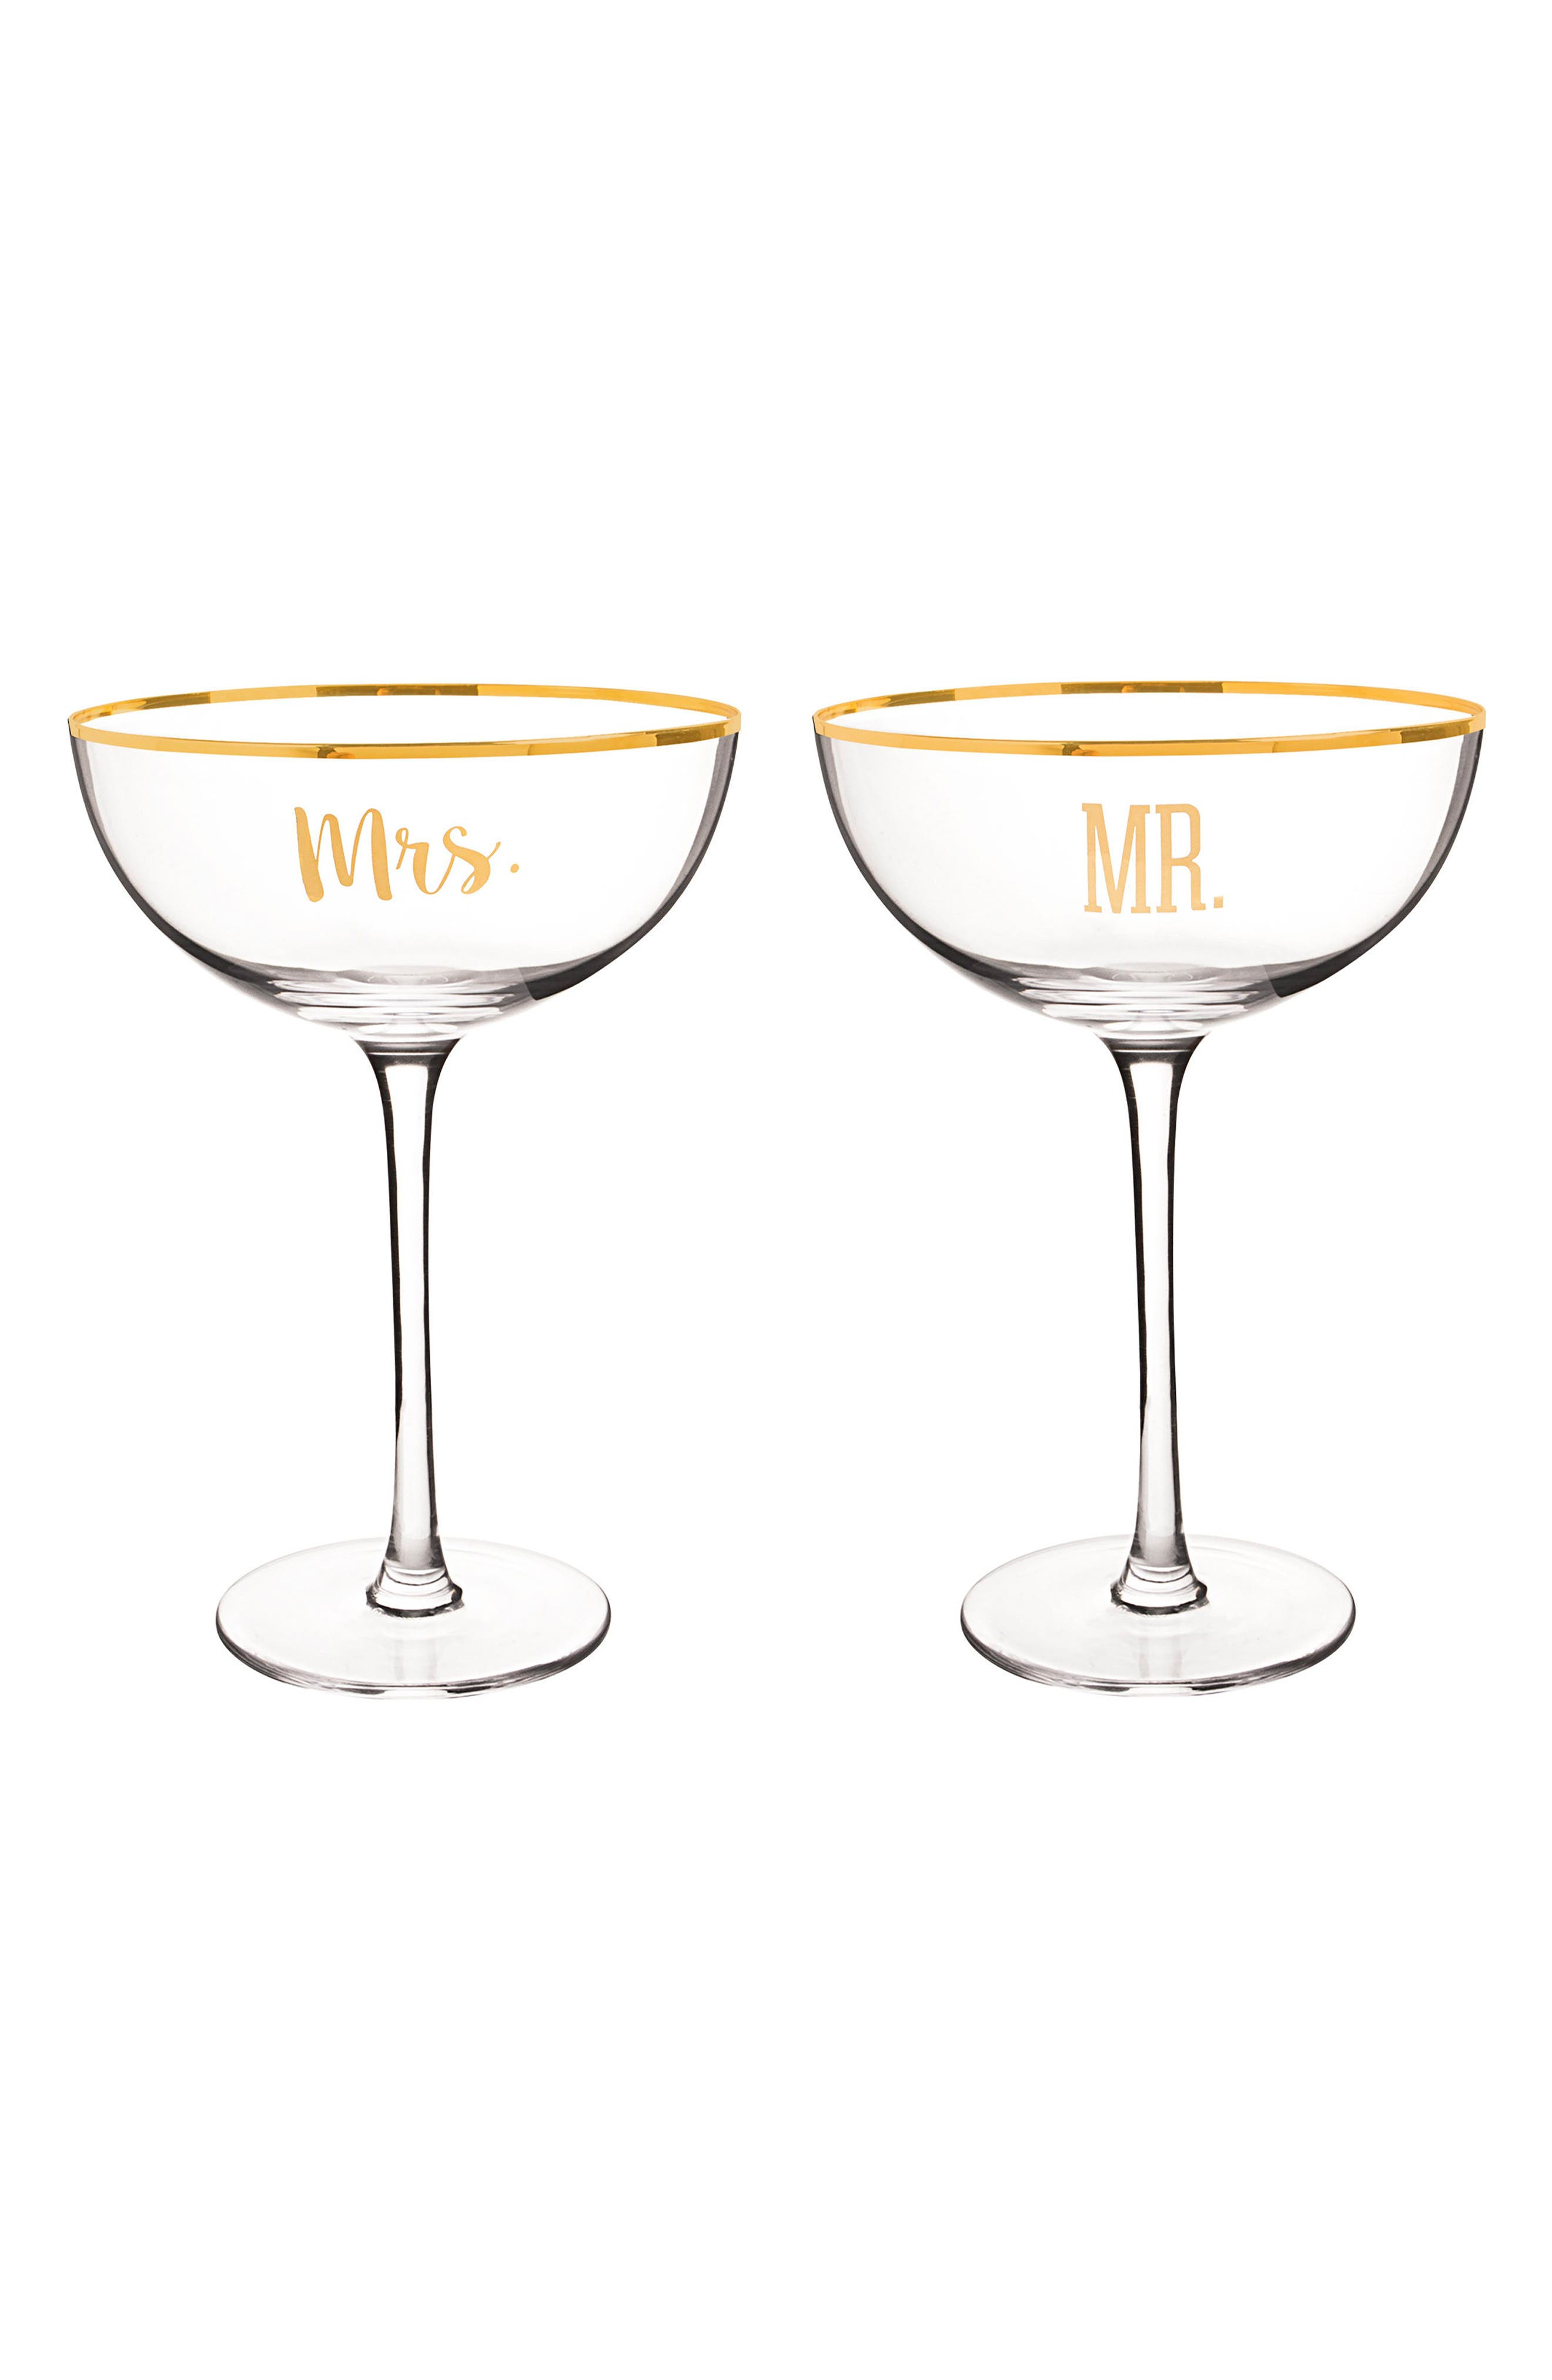 Mr. & Mrs. Set of 2 Champagne Coupe Toasting Glasses,                             Main thumbnail 1, color,                             Gold